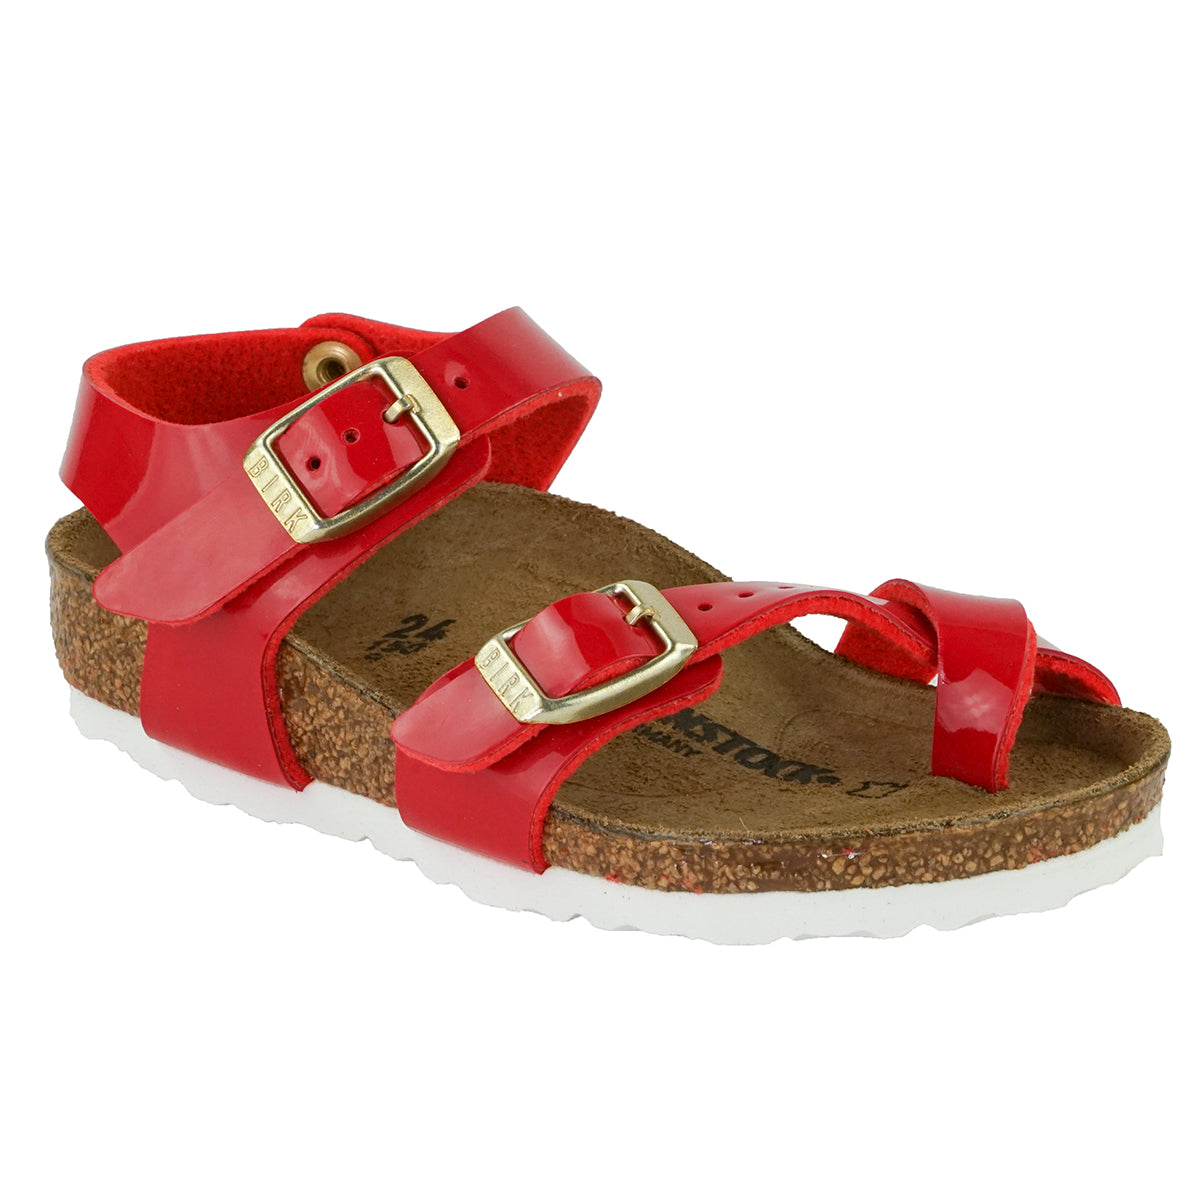 Tango Red Patent BIRKENSTOCK Kid's Shoes